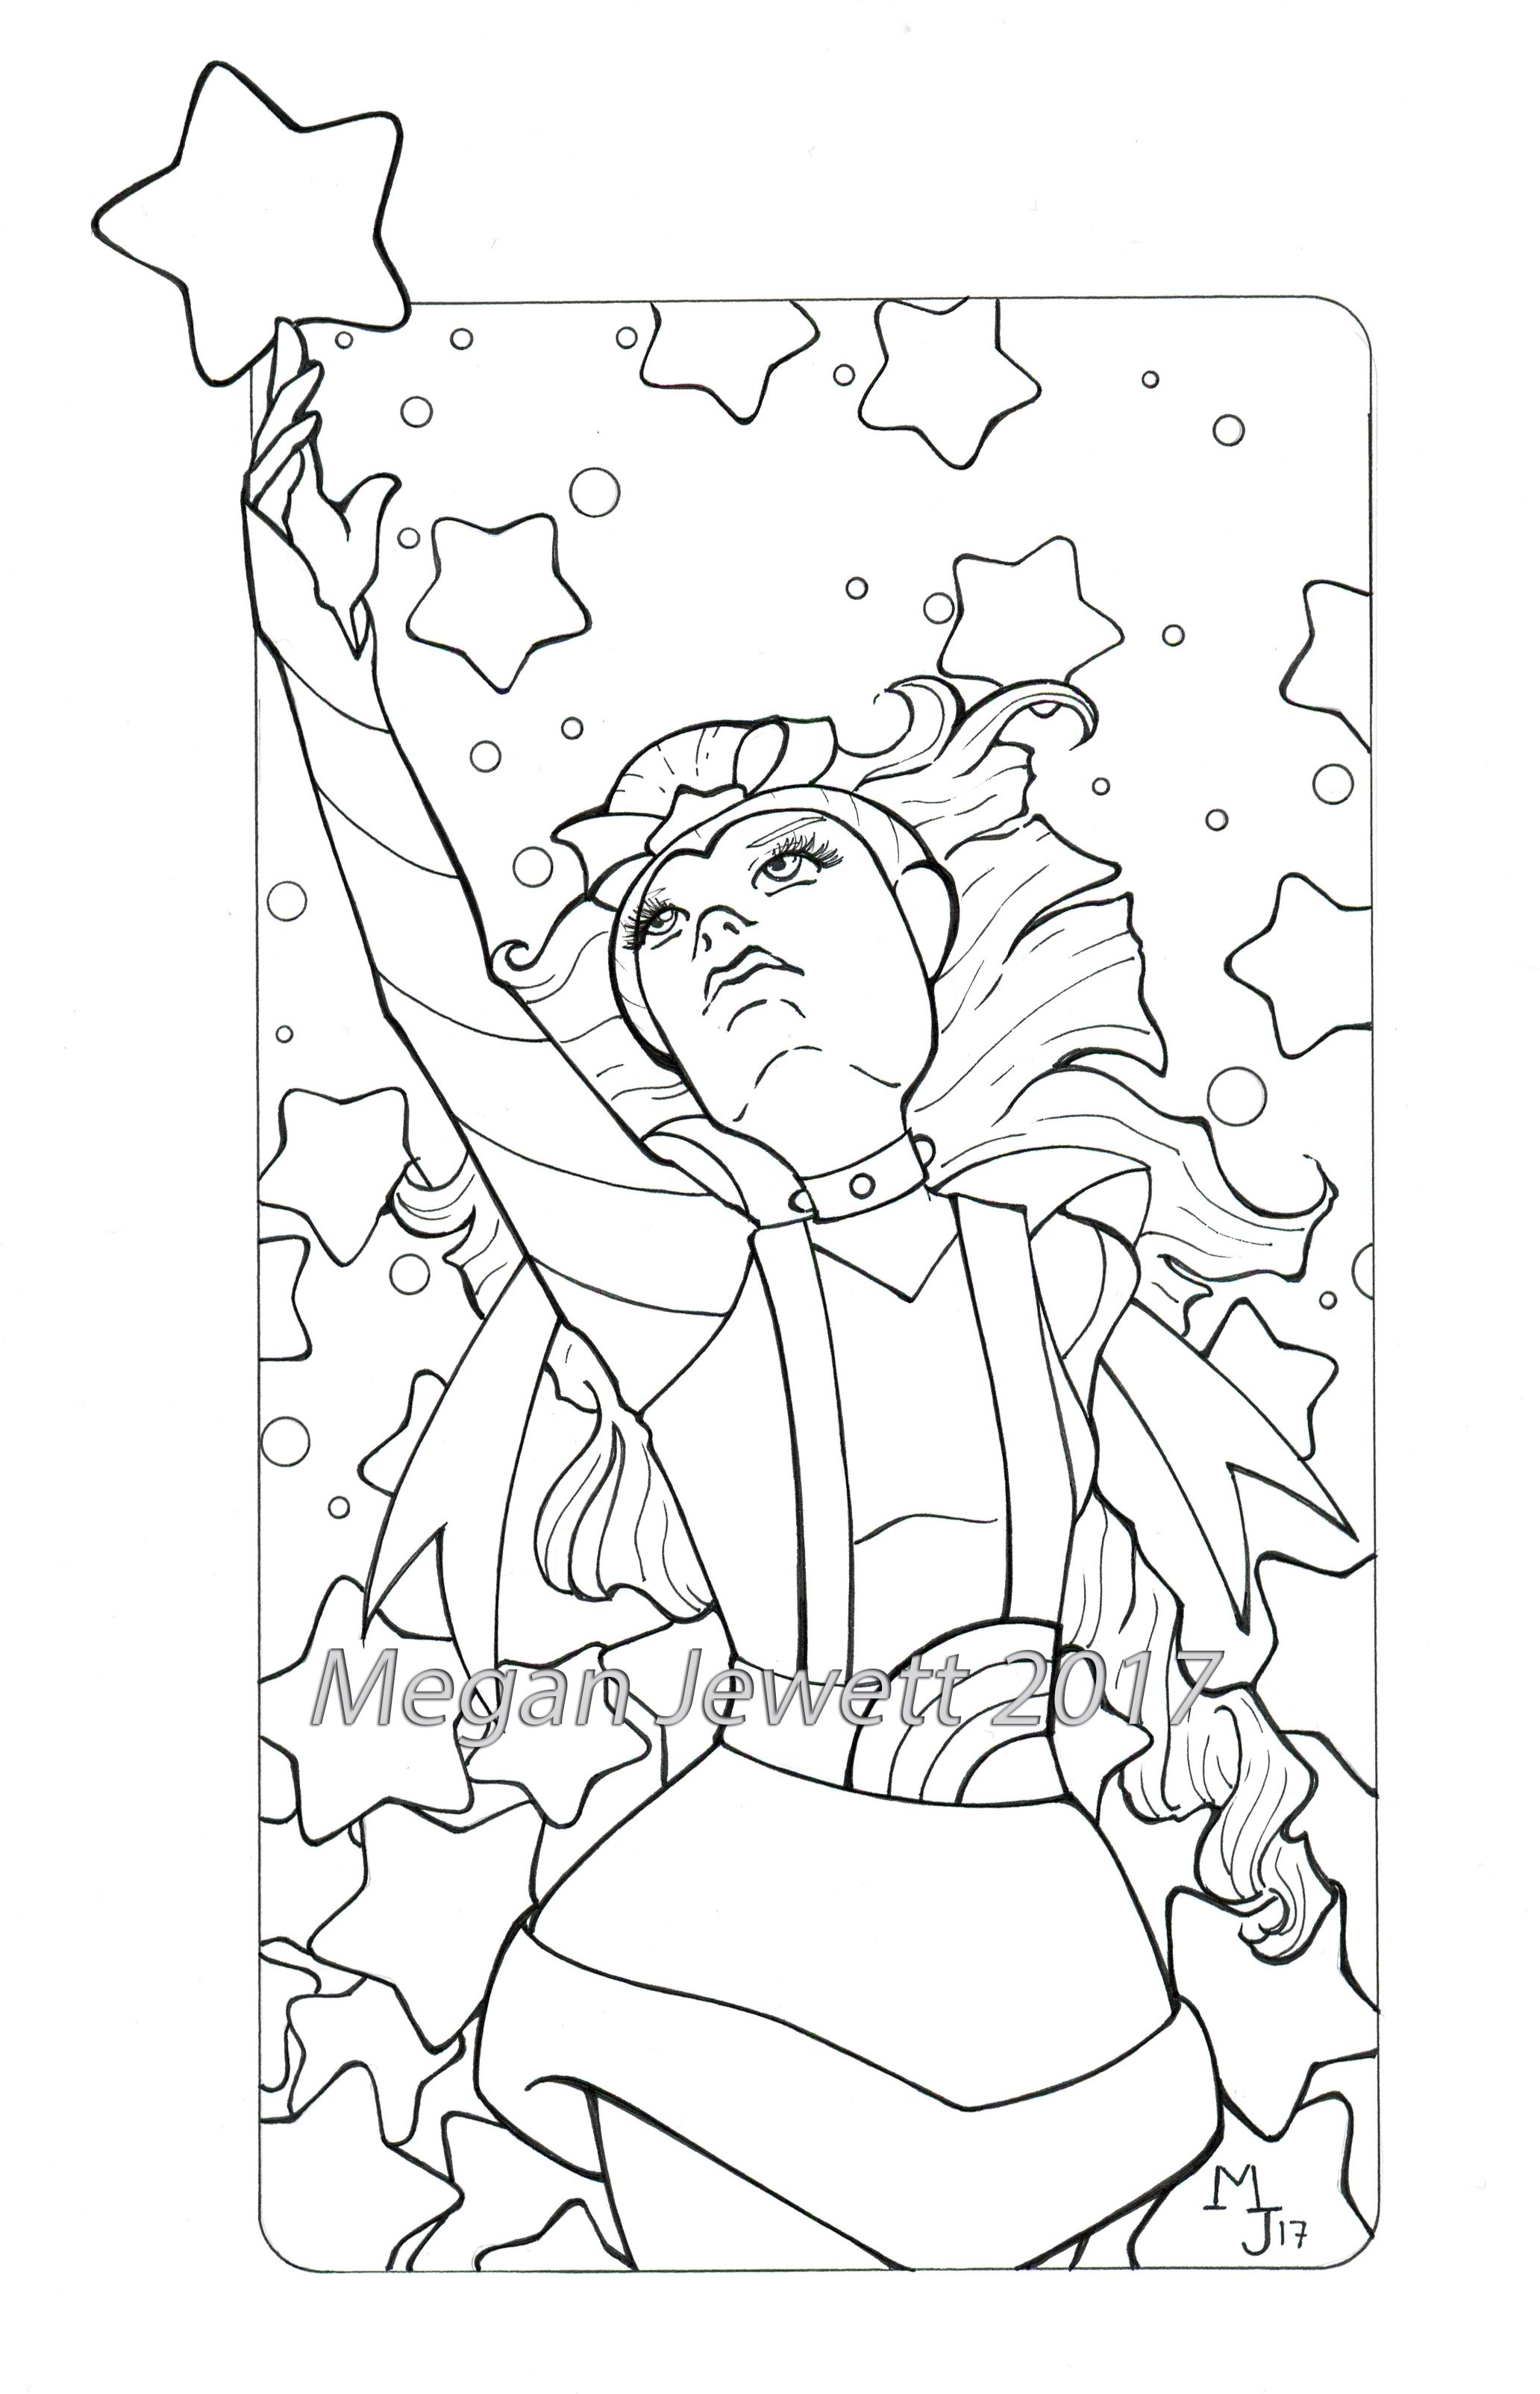 Pin by M.J. Jewett on Pop Culture Coloring Pages